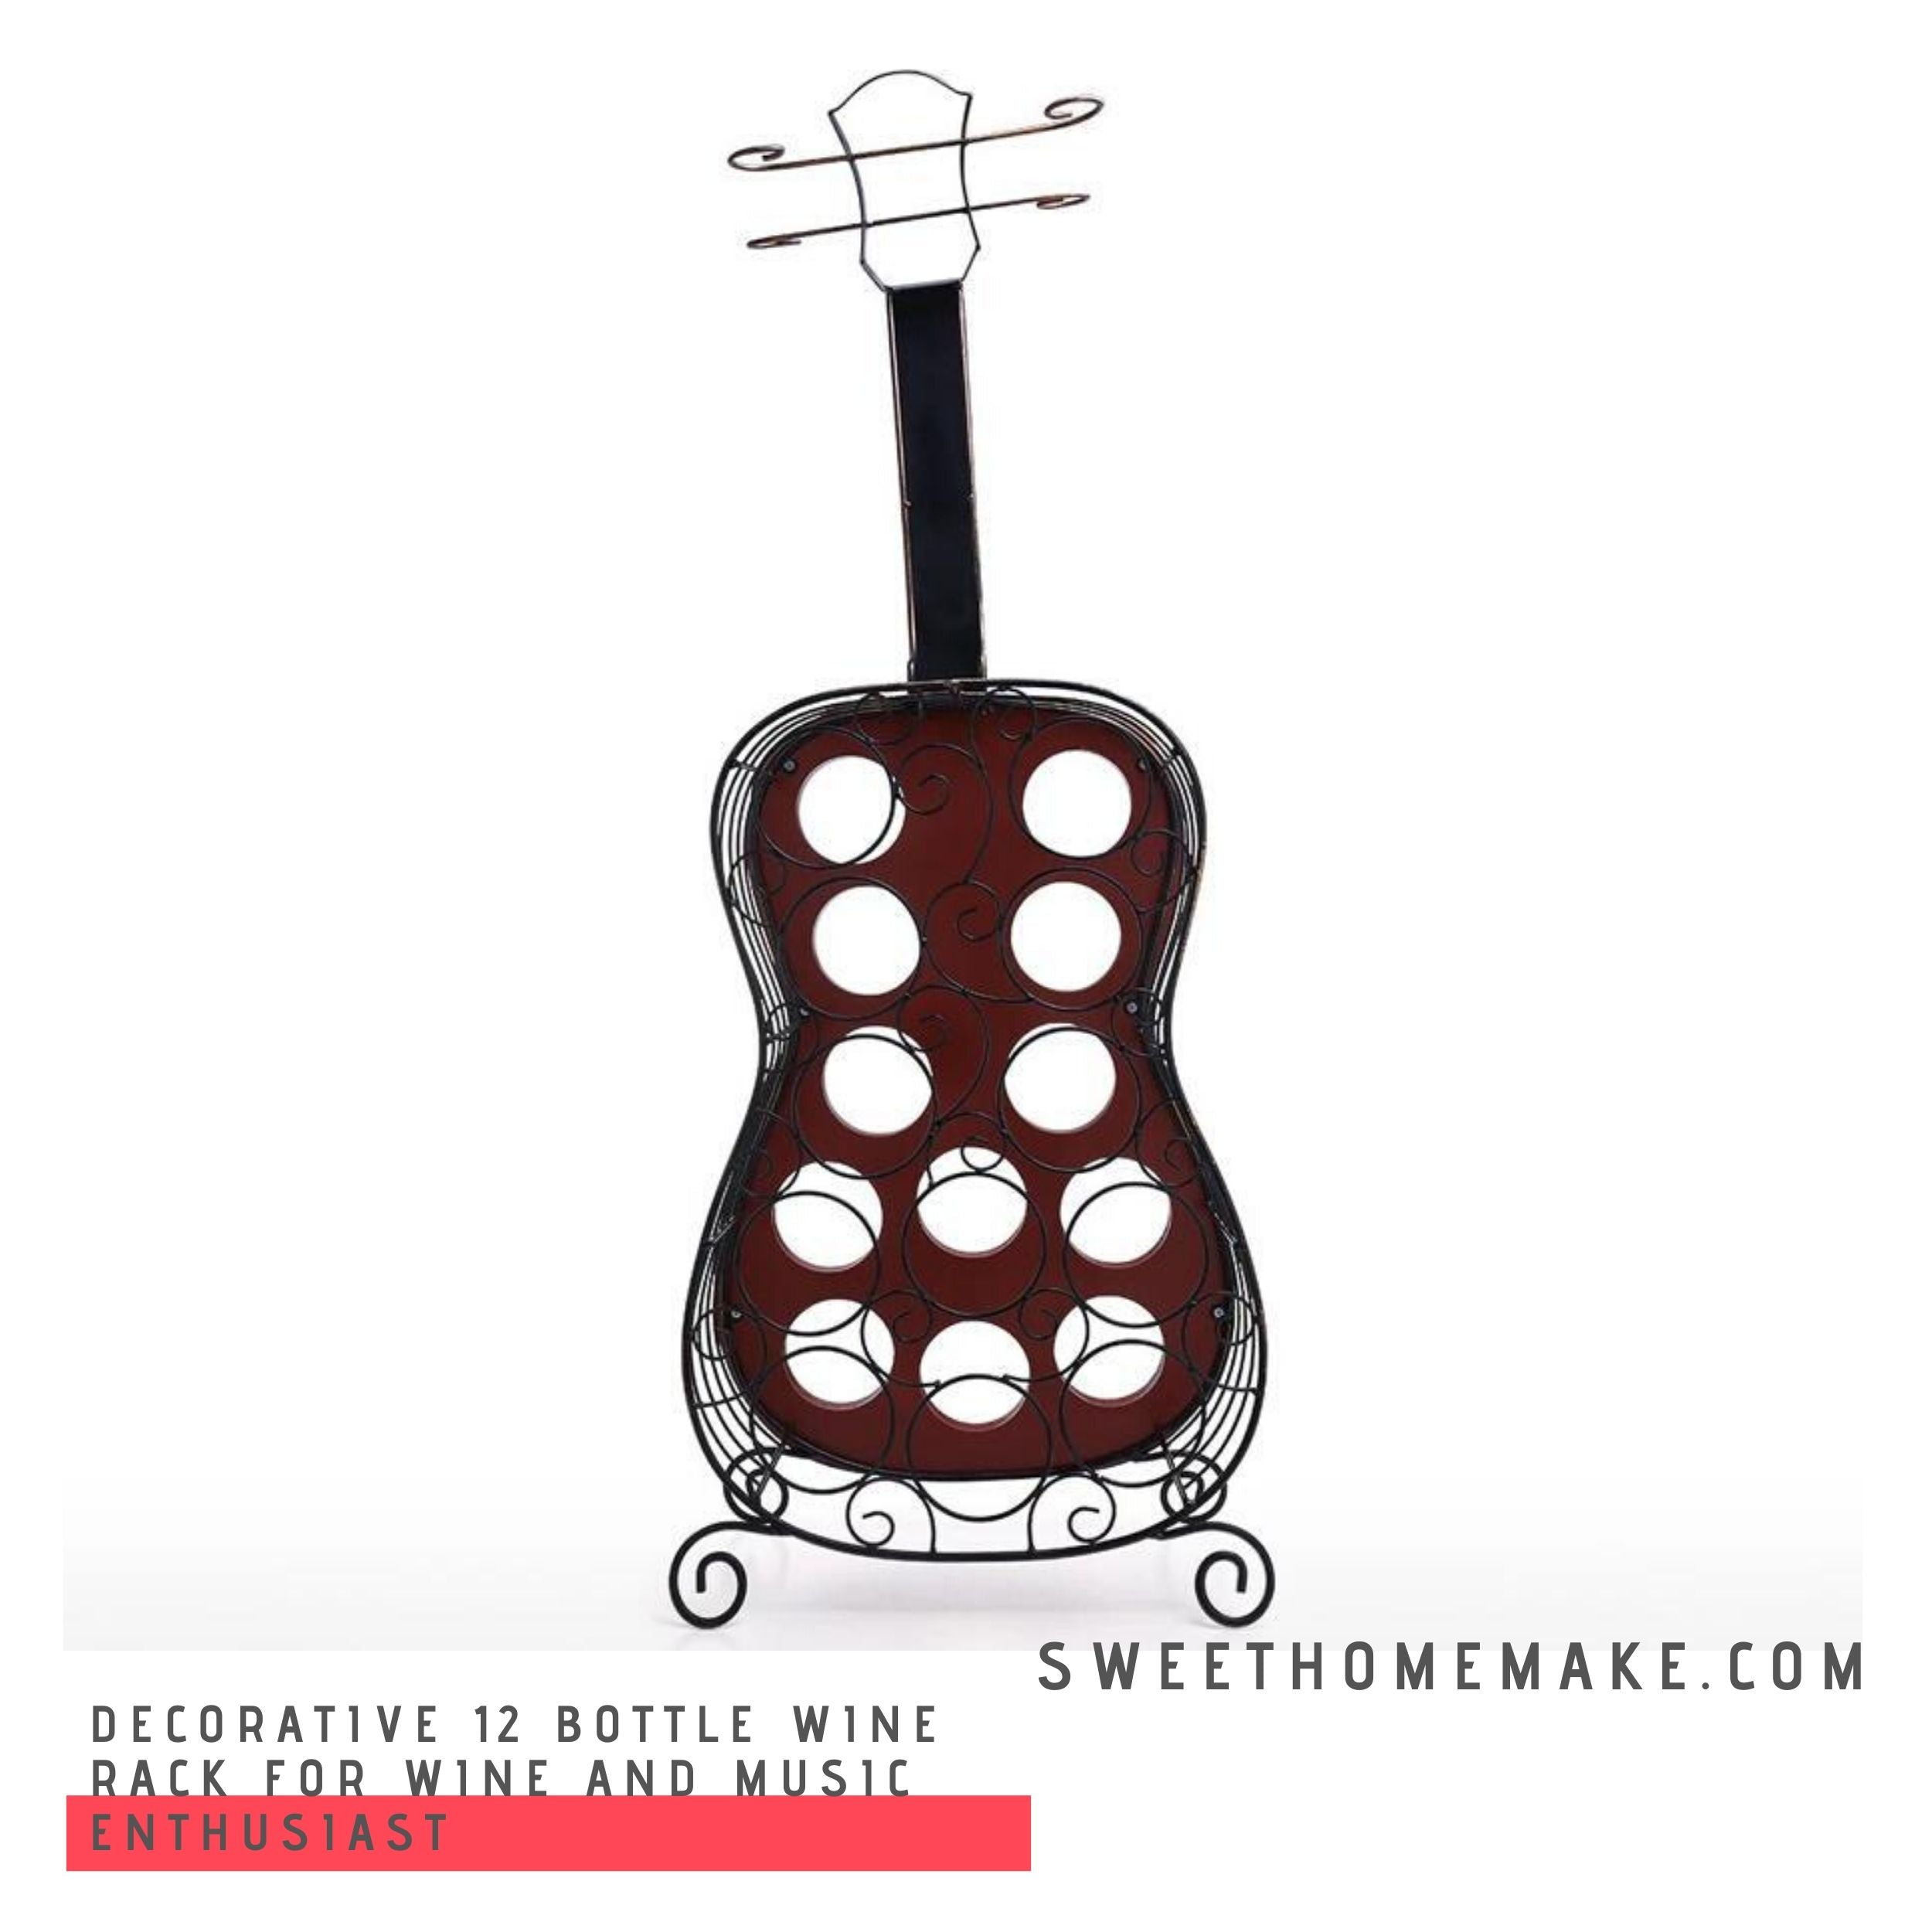 Portable 12 Bottle Wine Rack for Wine and Music Enthusiast